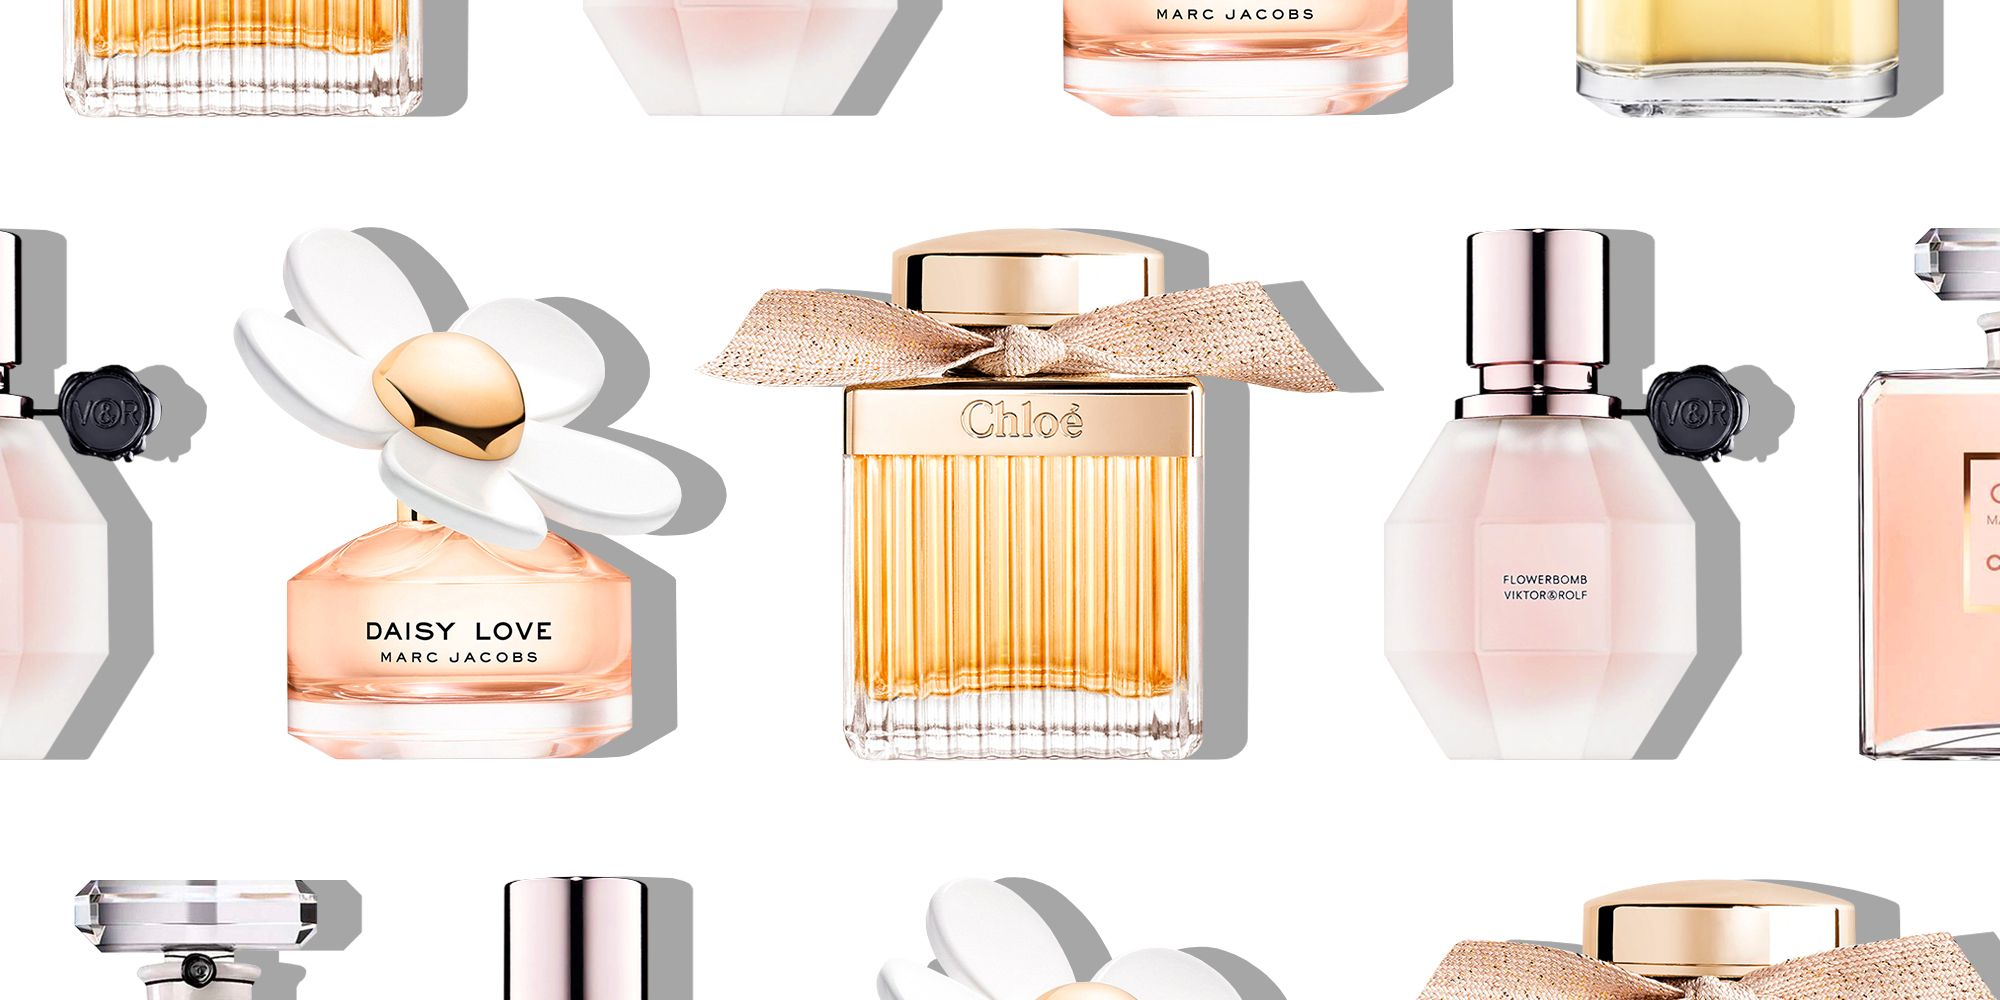 perfume gift set best 2019 & 9 Best Perfume Gift Sets to Give in 2019 - Fragrance Gift Sets for Her